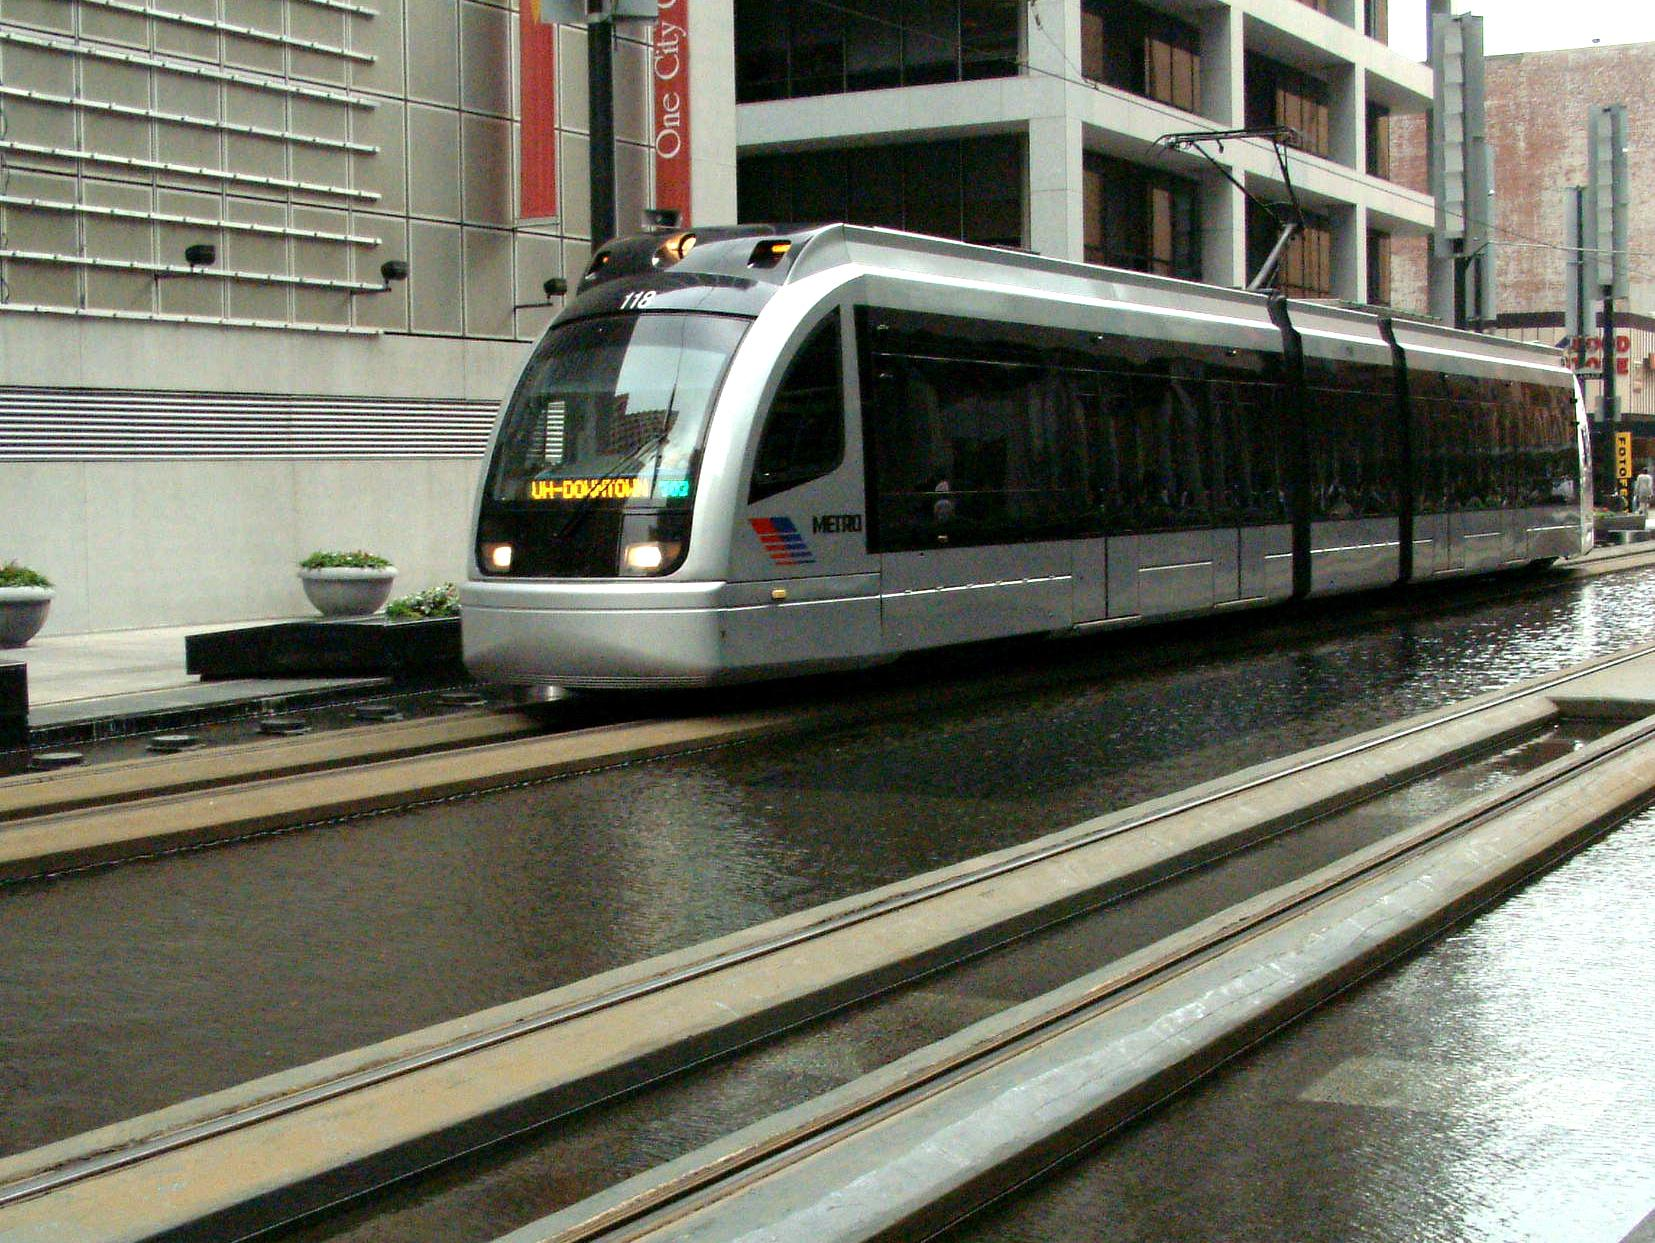 Light_Rail_Houston.jpg 1,655×1,243 pixels